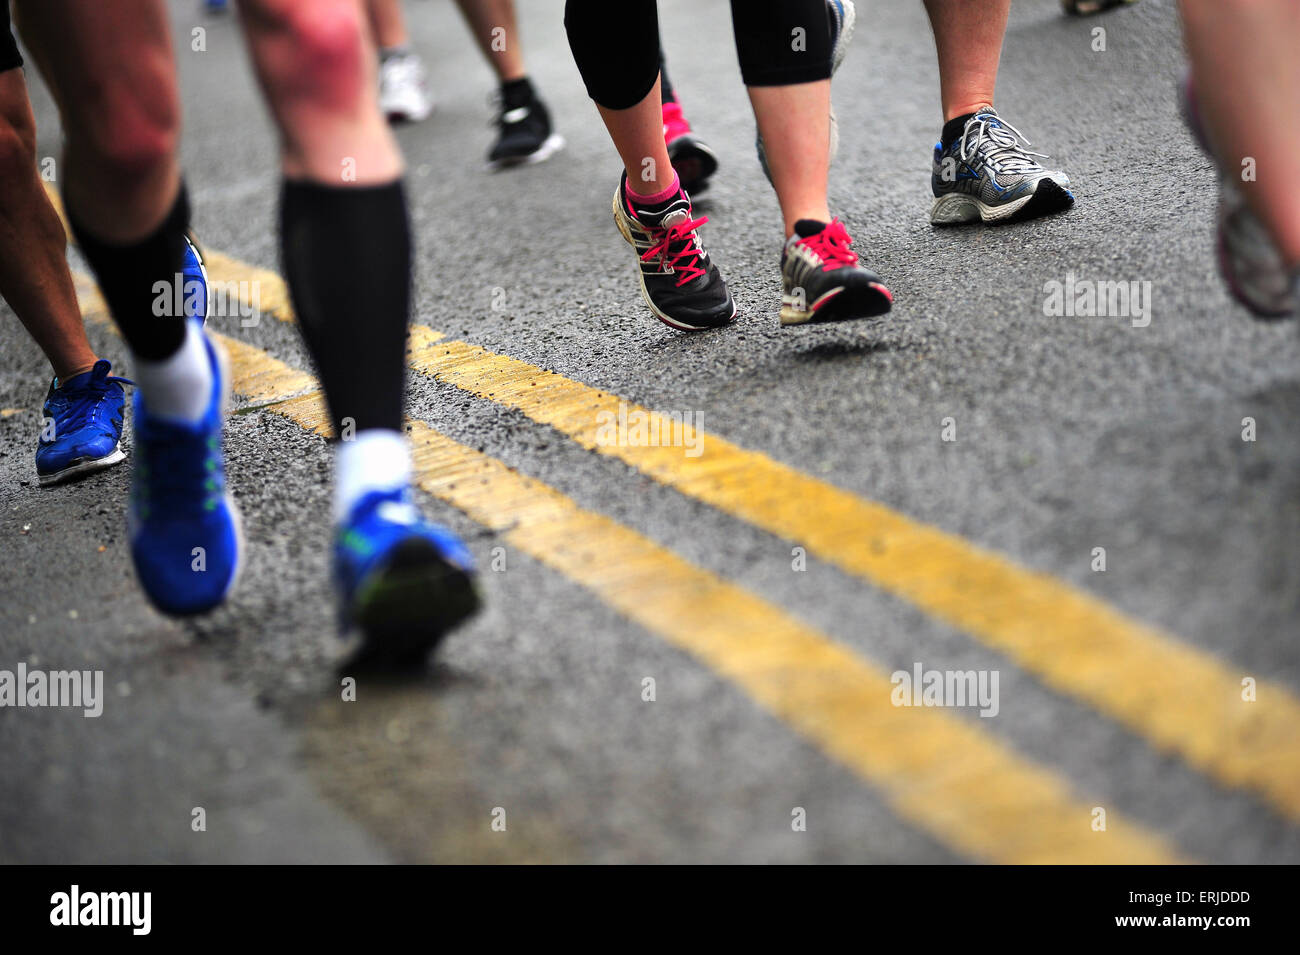 People running during the Bristol 10 race. - Stock Image